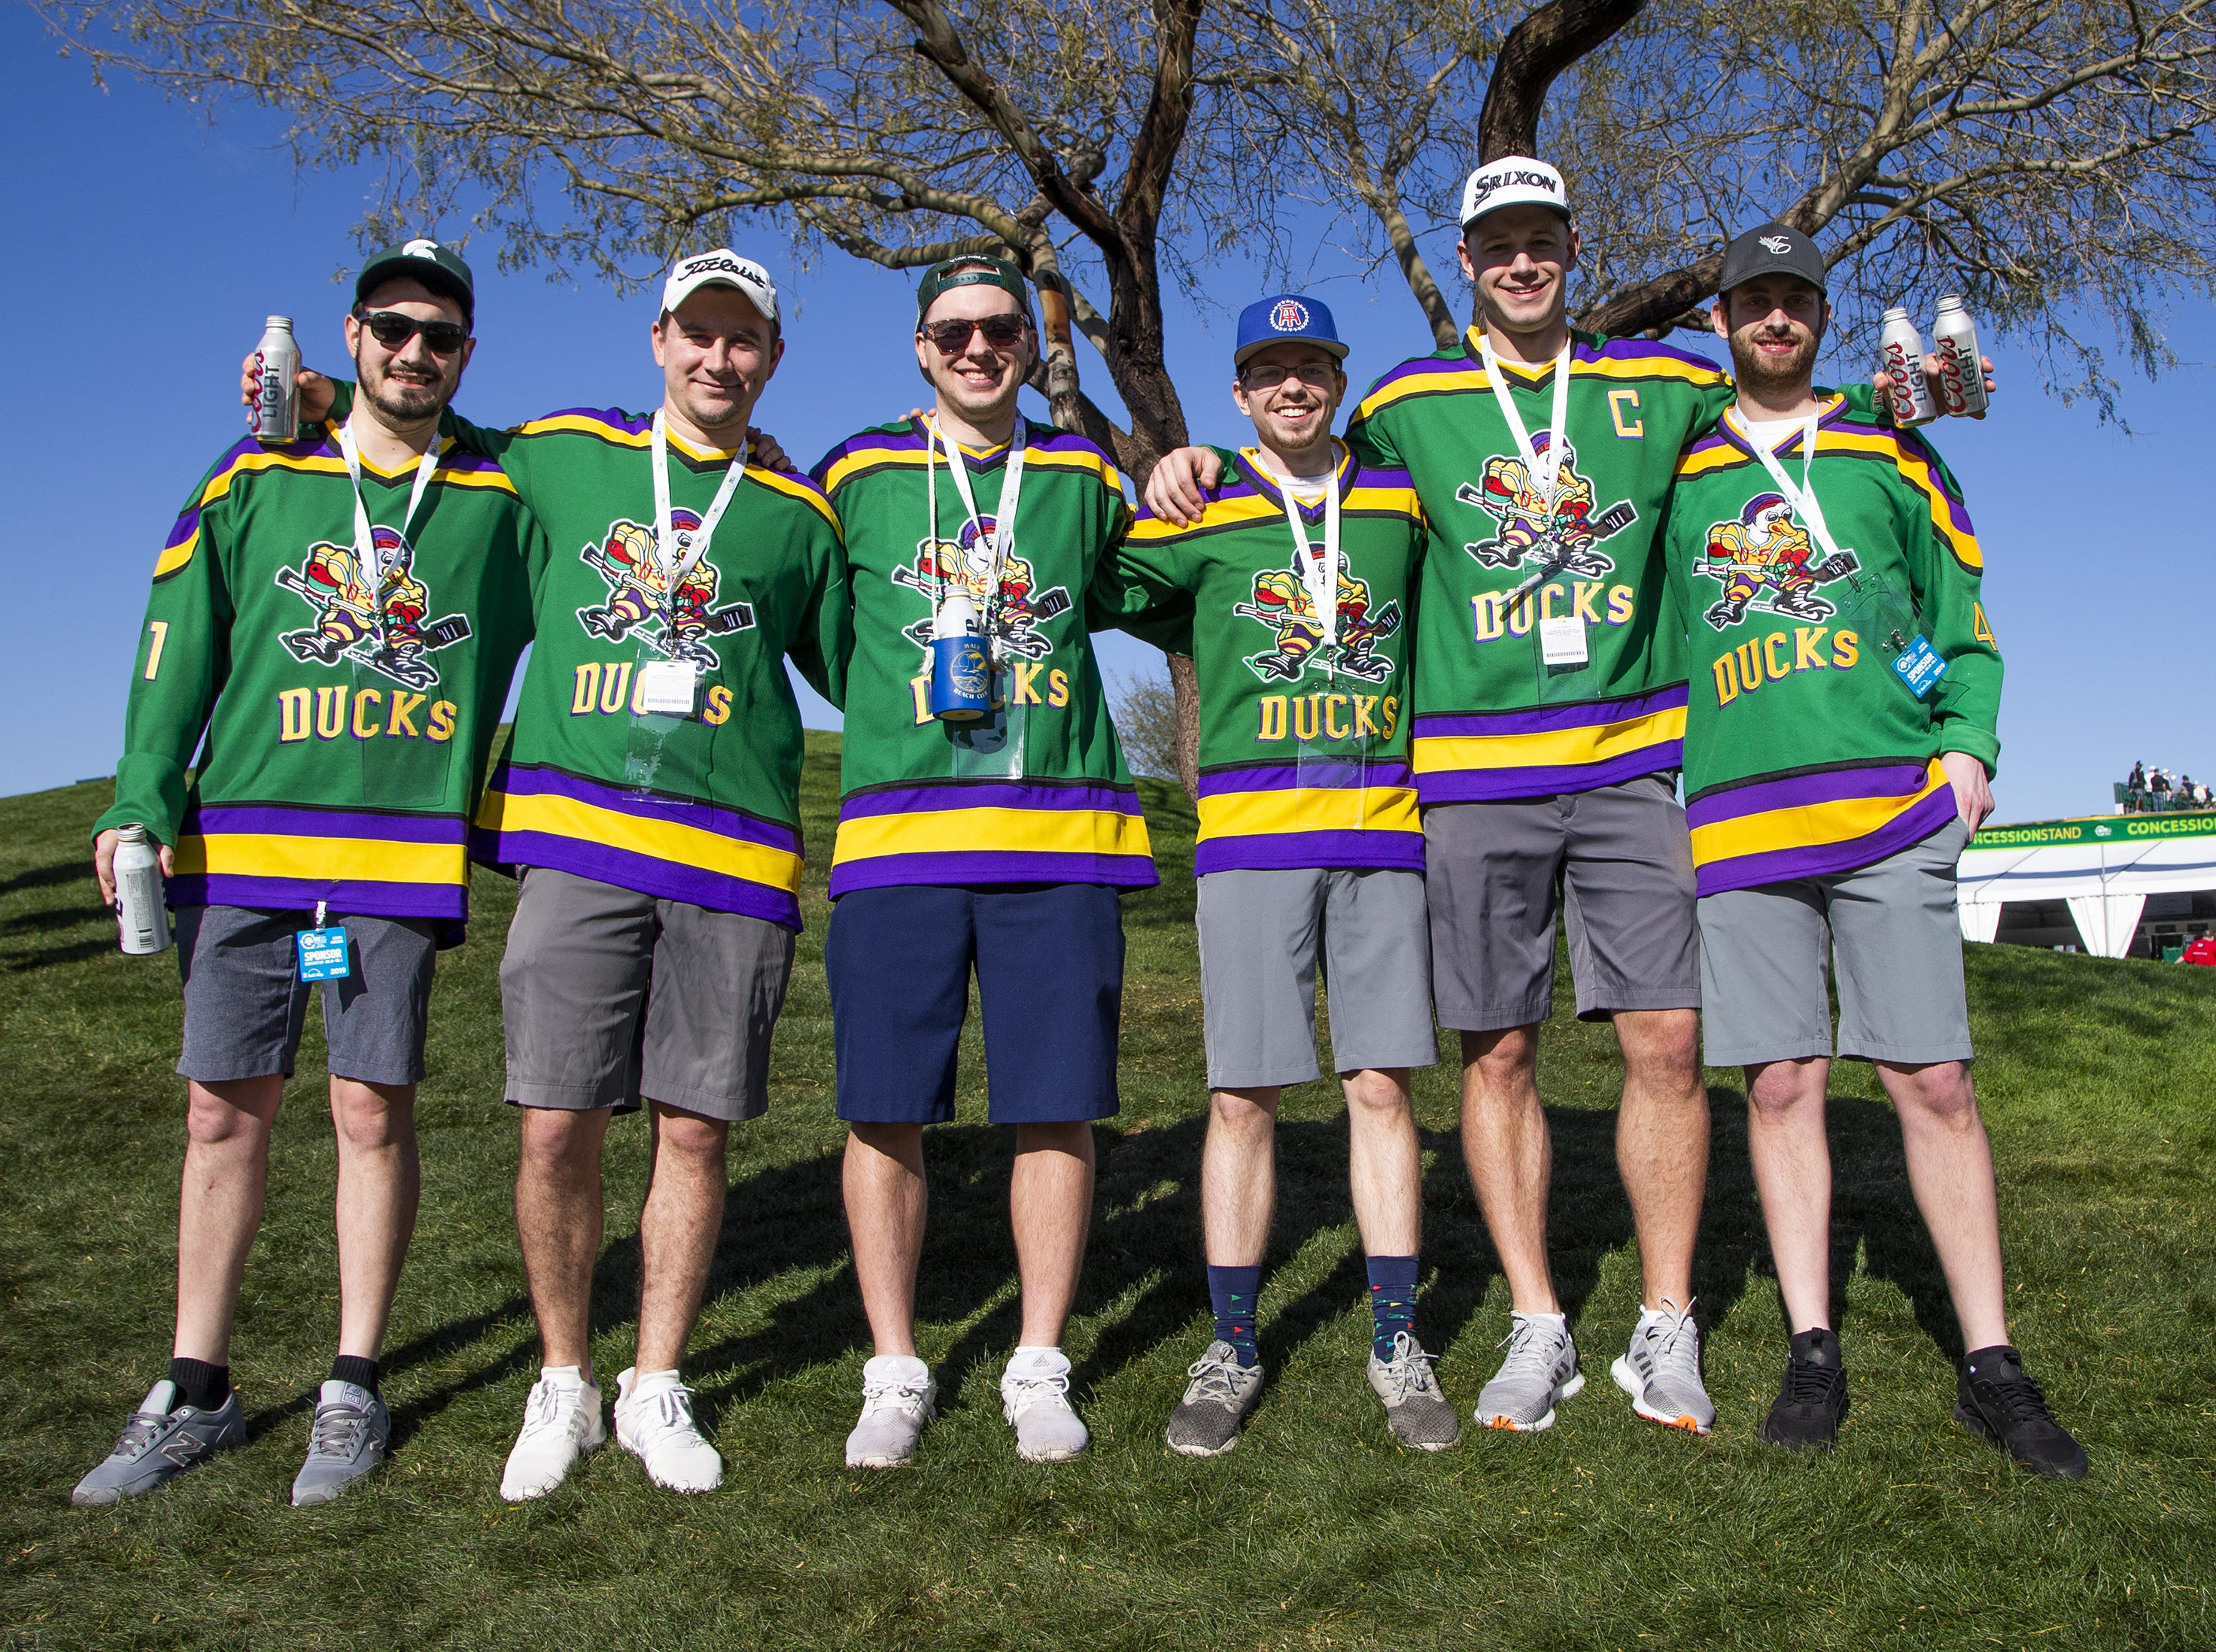 Friends from Grand Rapids, Michigan, dressed up in jerseys for The Mighty Ducks movie for the second round of the Waste Management Phoenix Open at the TPC Scottsdale, Friday, February 1, 2019.  From left to right are; Sam Cusmano, 28, Andy Brown, 28, Tyler Allard, 27, Michael Matusiak, 24, Derek Lennen, 27, and Cole Dehen, 28.